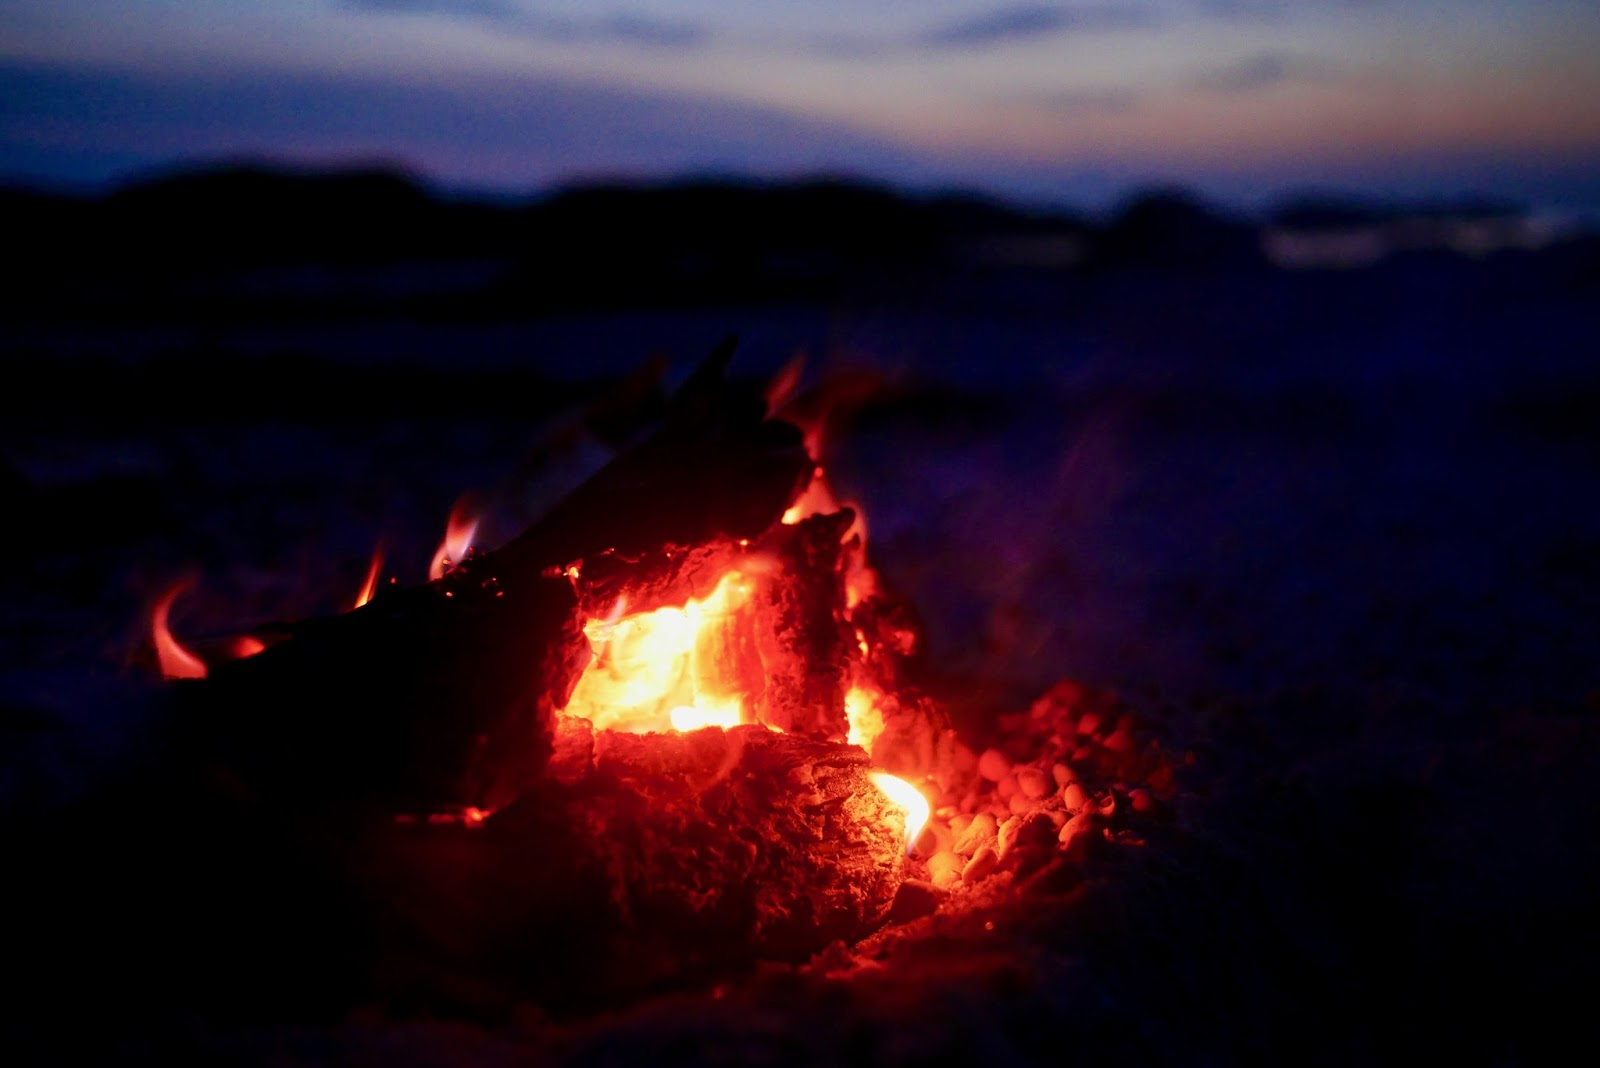 Stunning red flames of the campfire in Arisaig